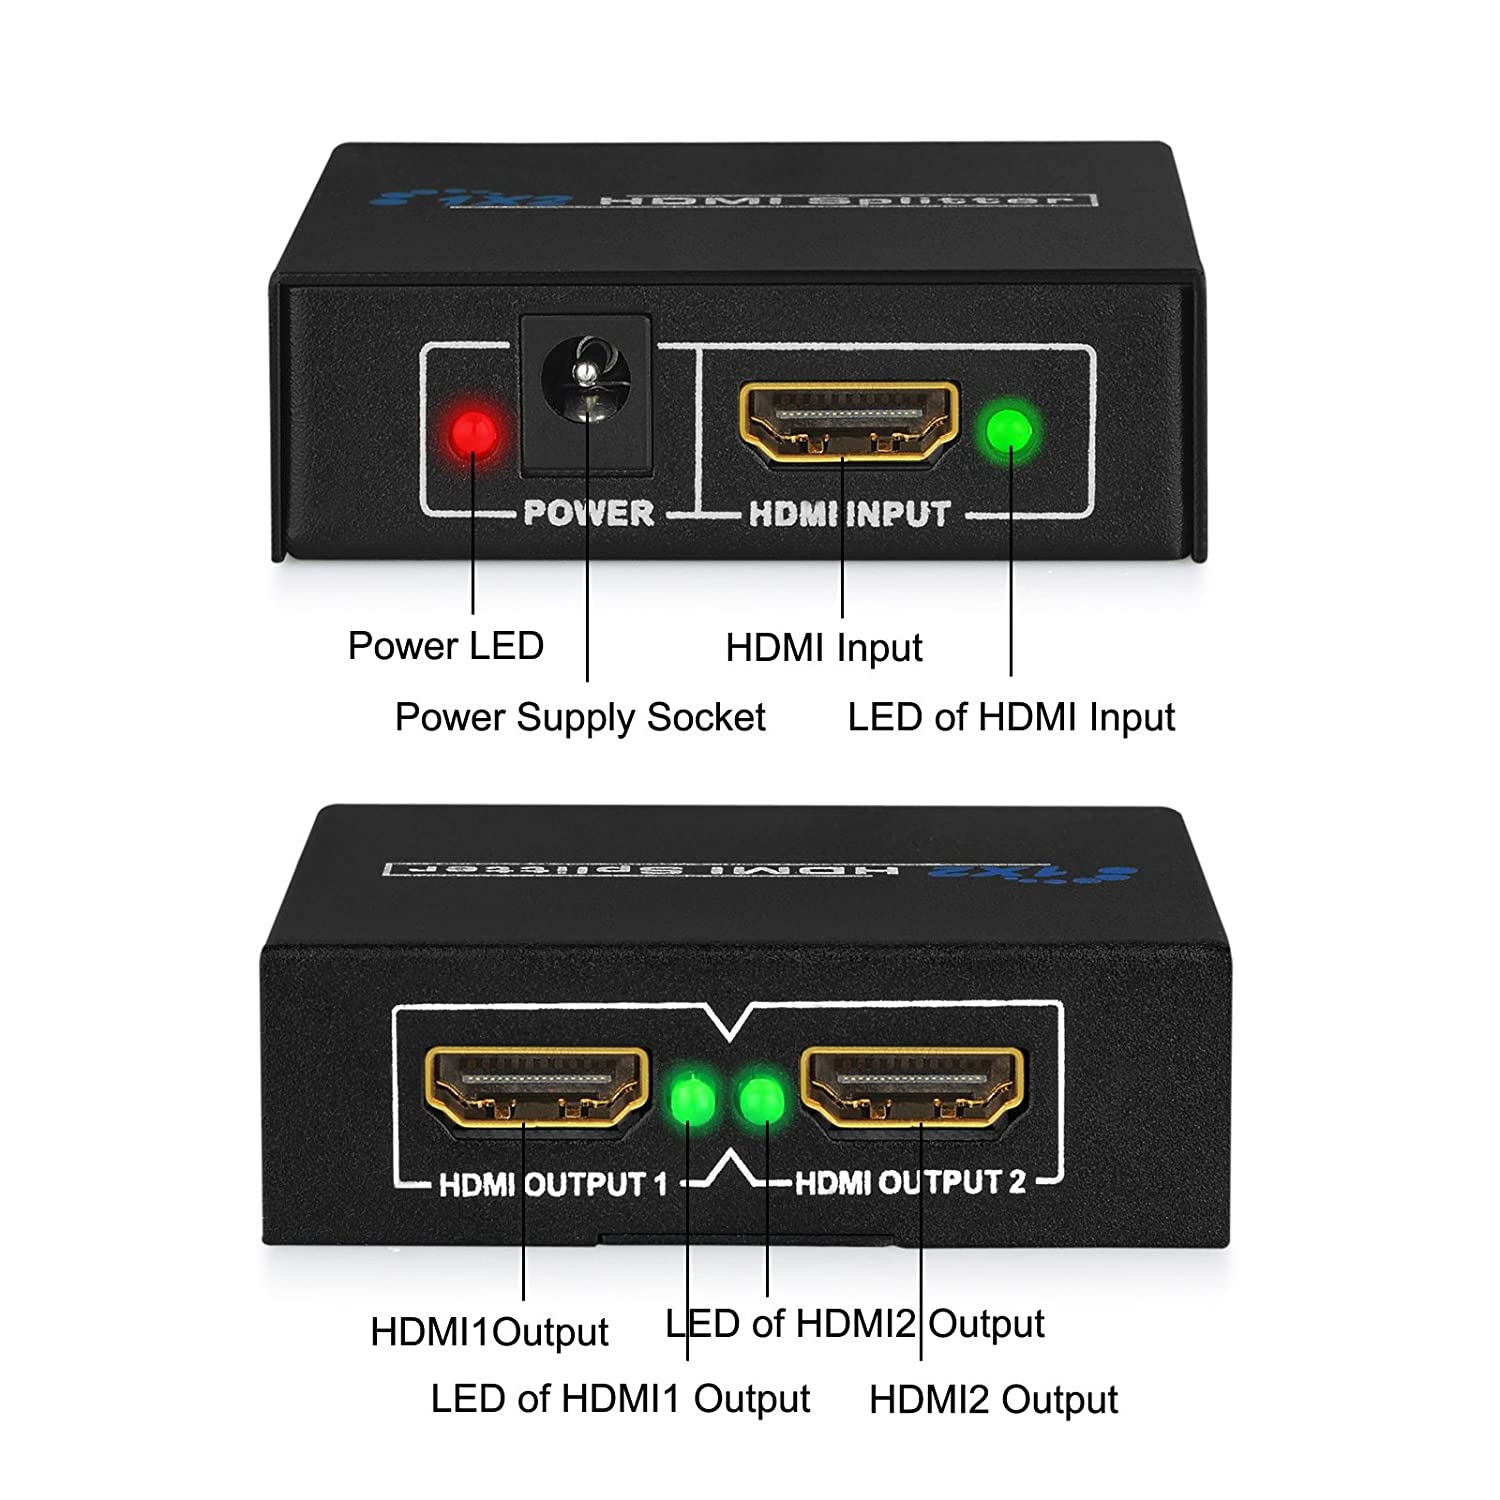 Esynic Hdp02 2 Way Hdmi Splitter Amplifier Switch Manual Usb Box One Hd Source Input Two Display On Tv At The Same Time